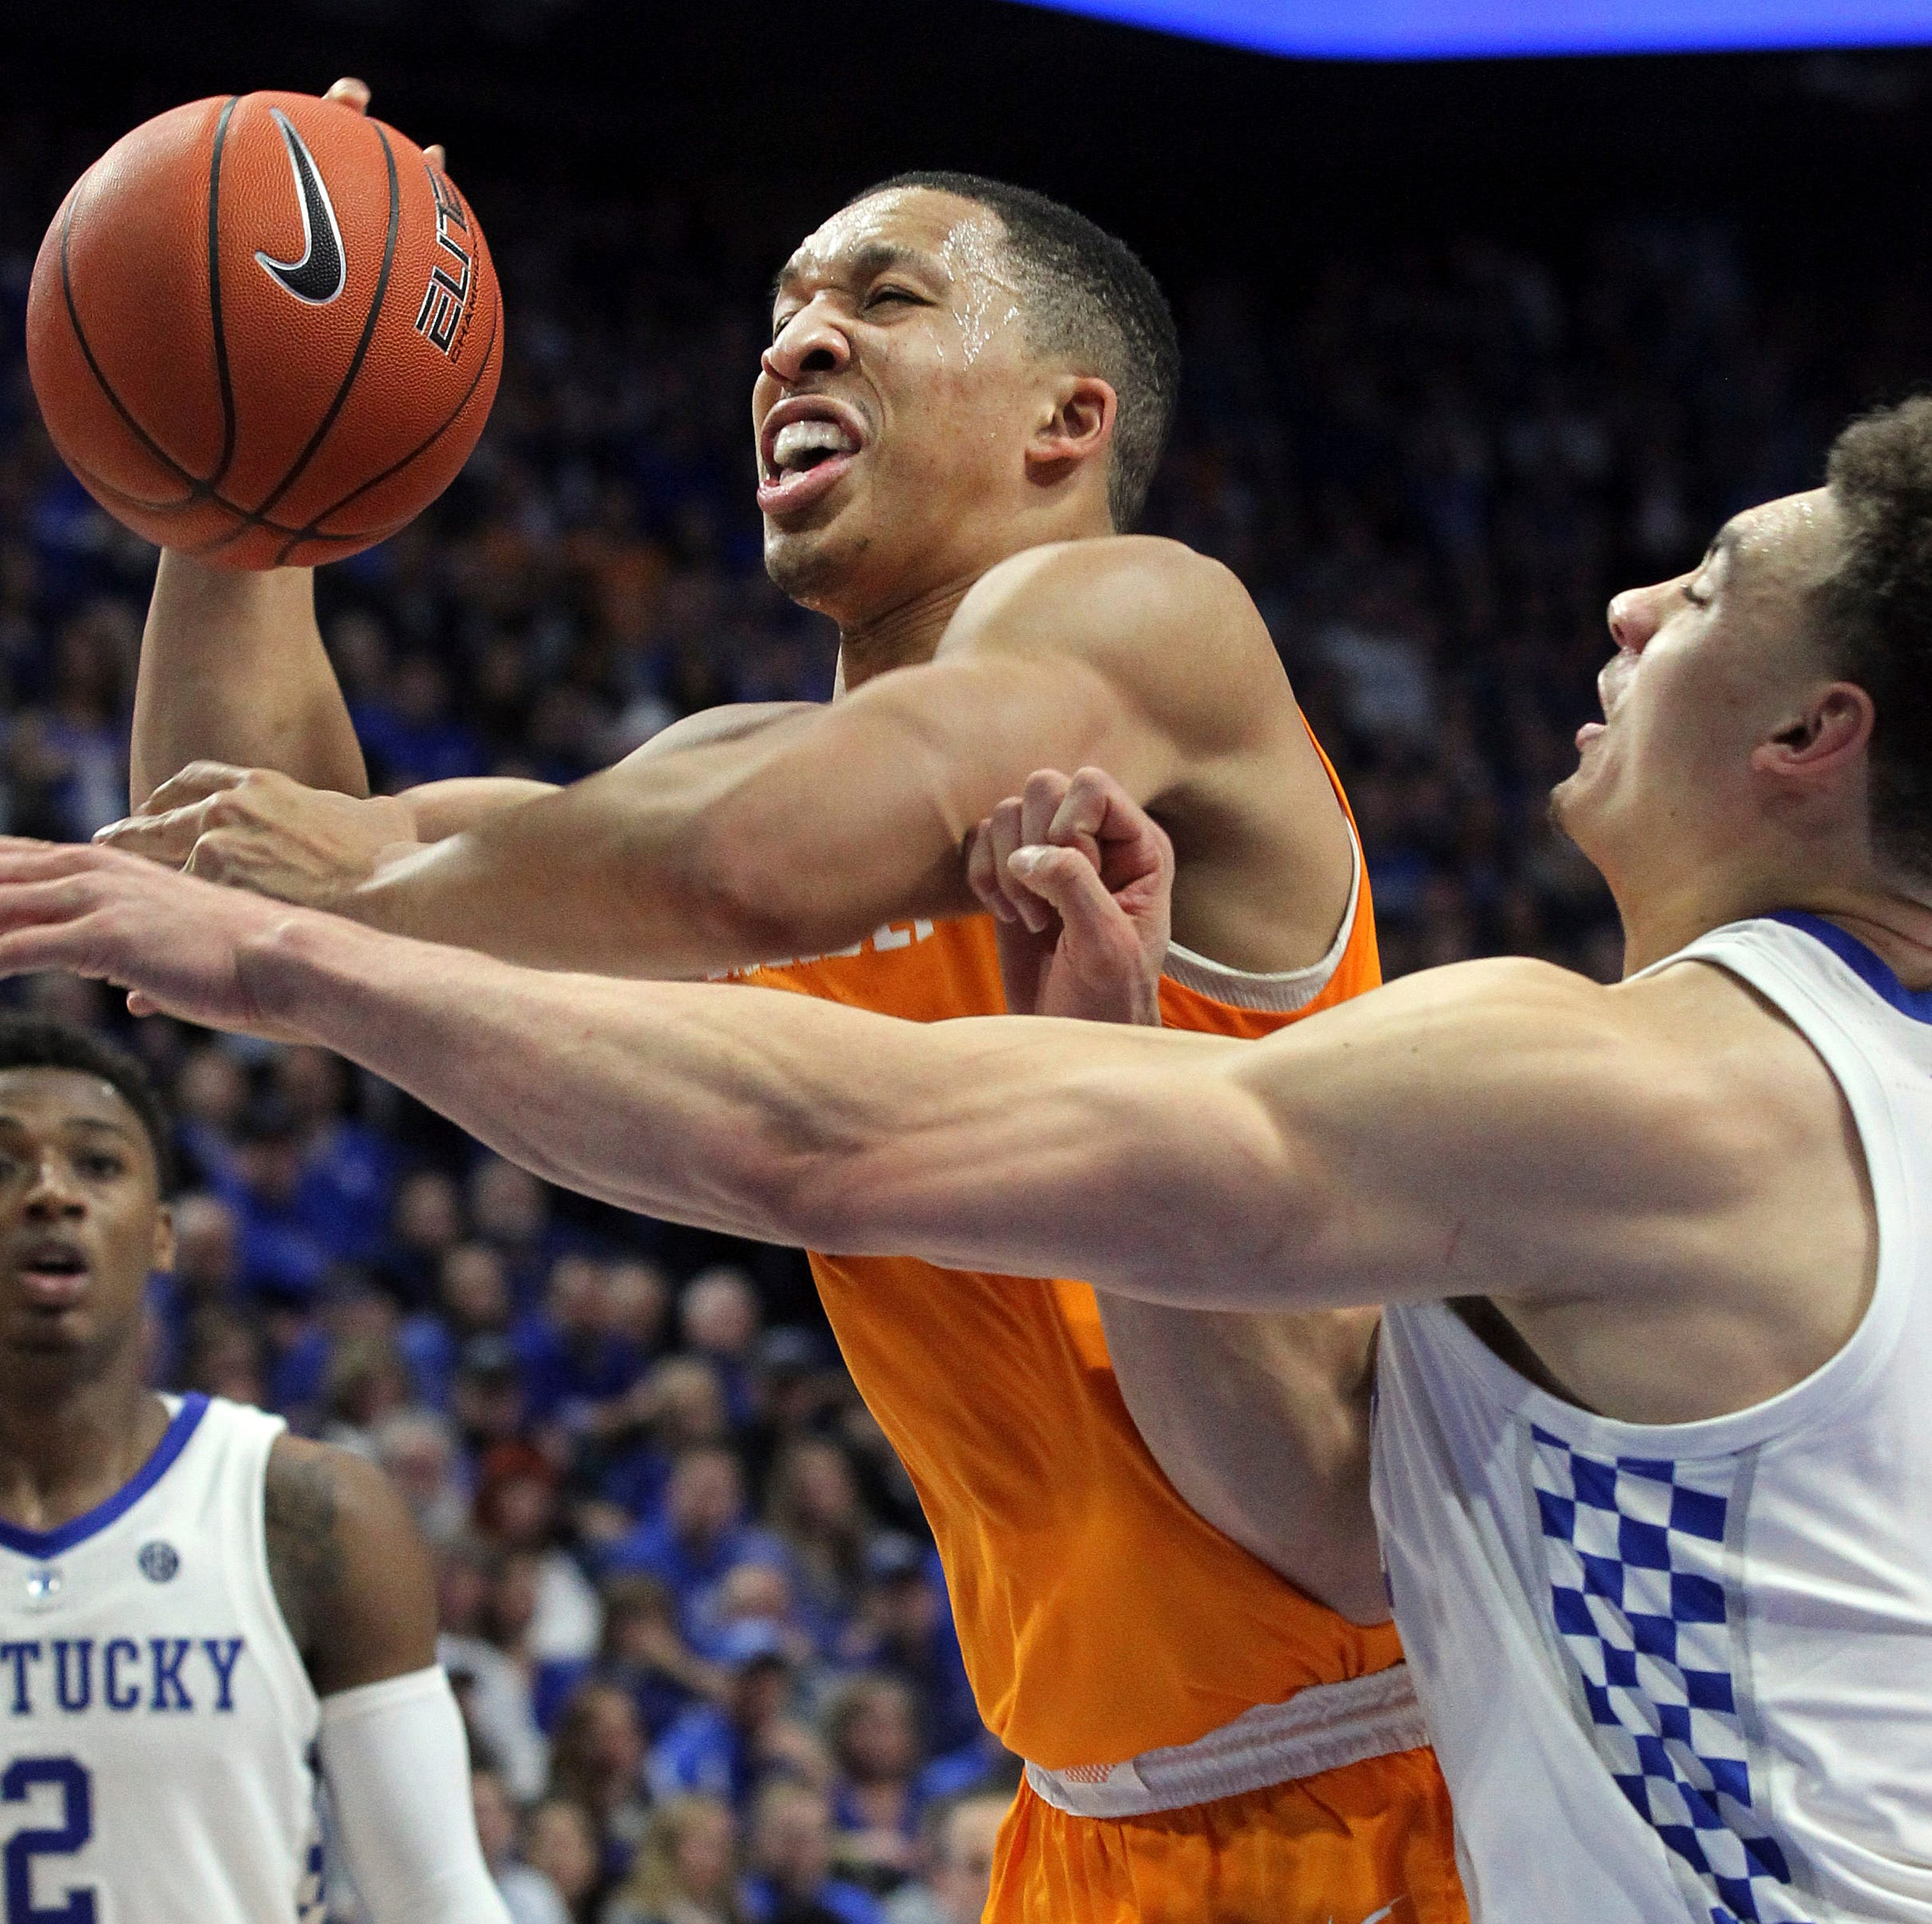 Tennessee's Grant Williams, left, shoots while...